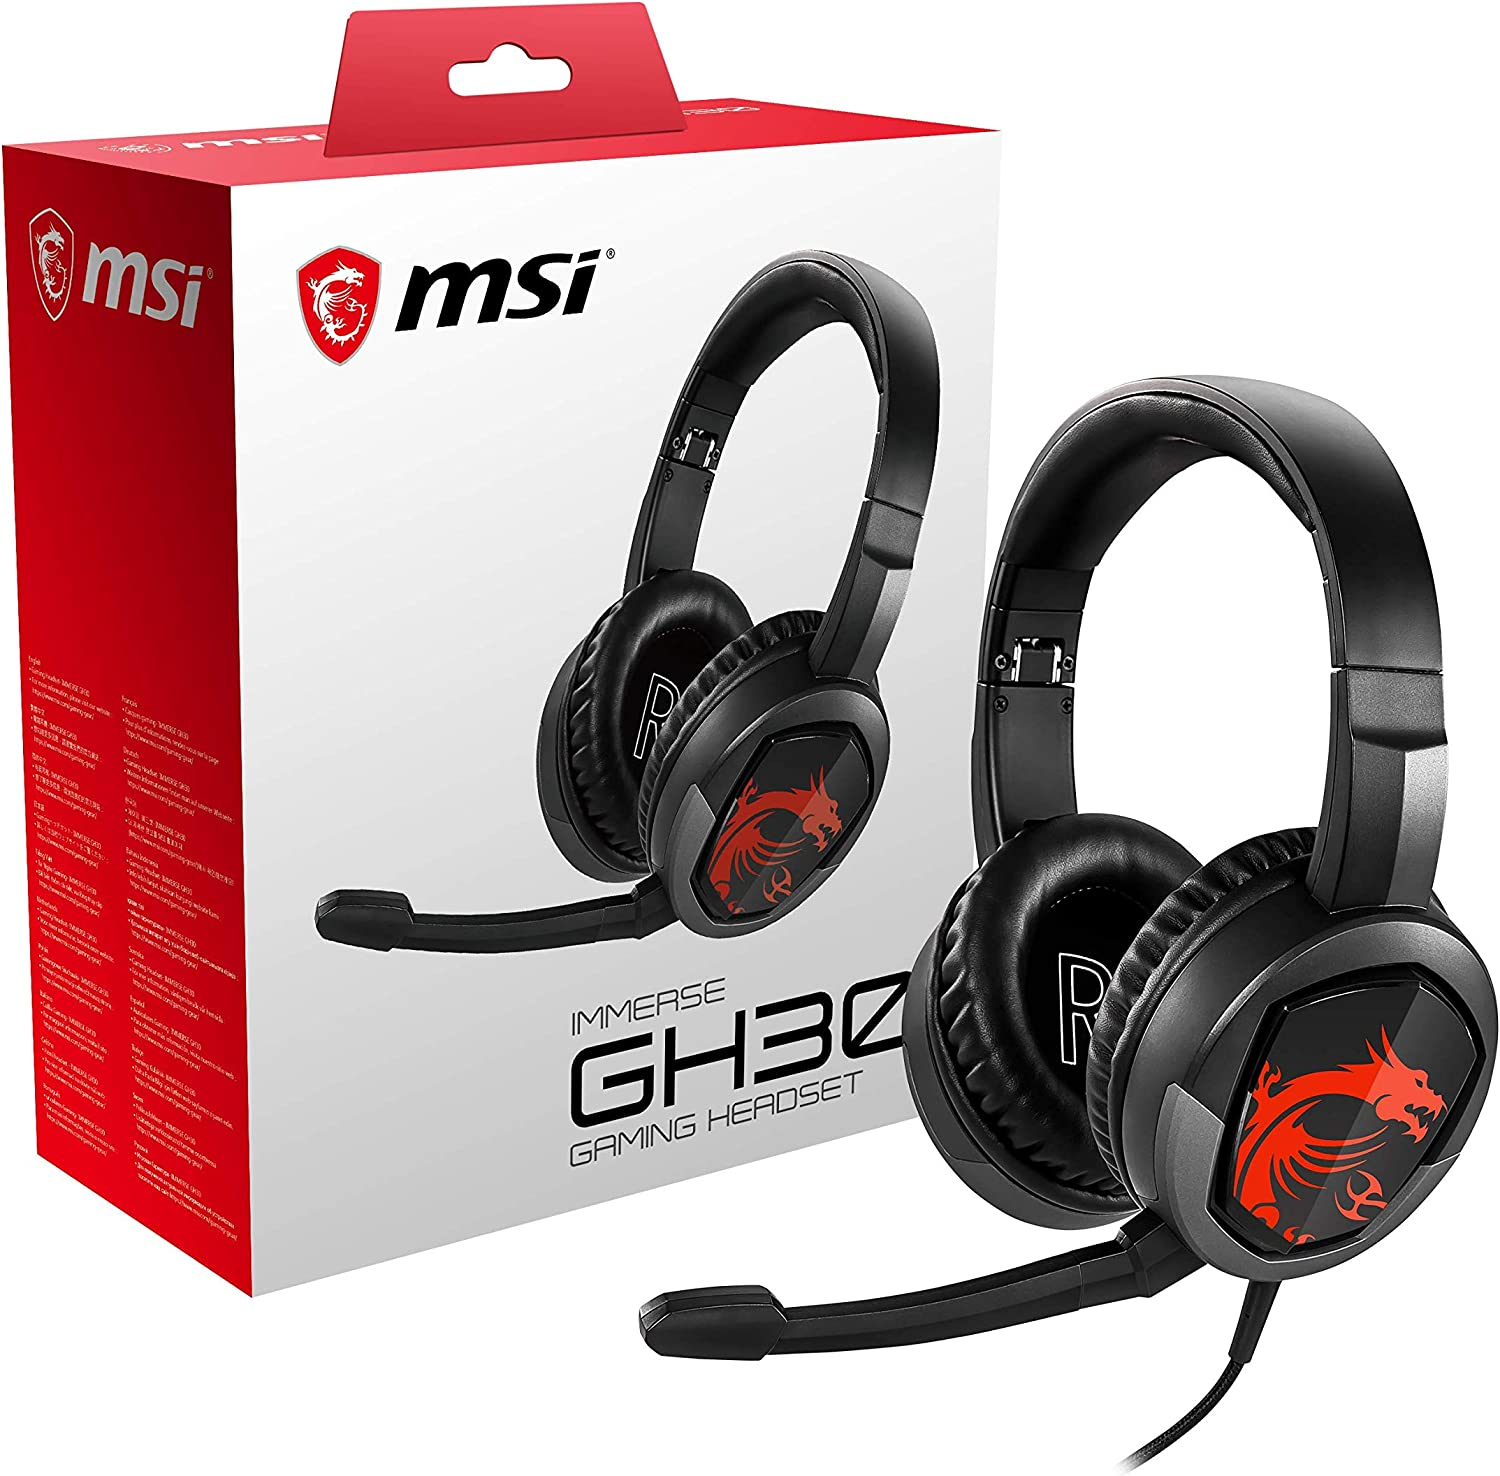 MSI IMMERSE GH30 Gaming Headset, Black